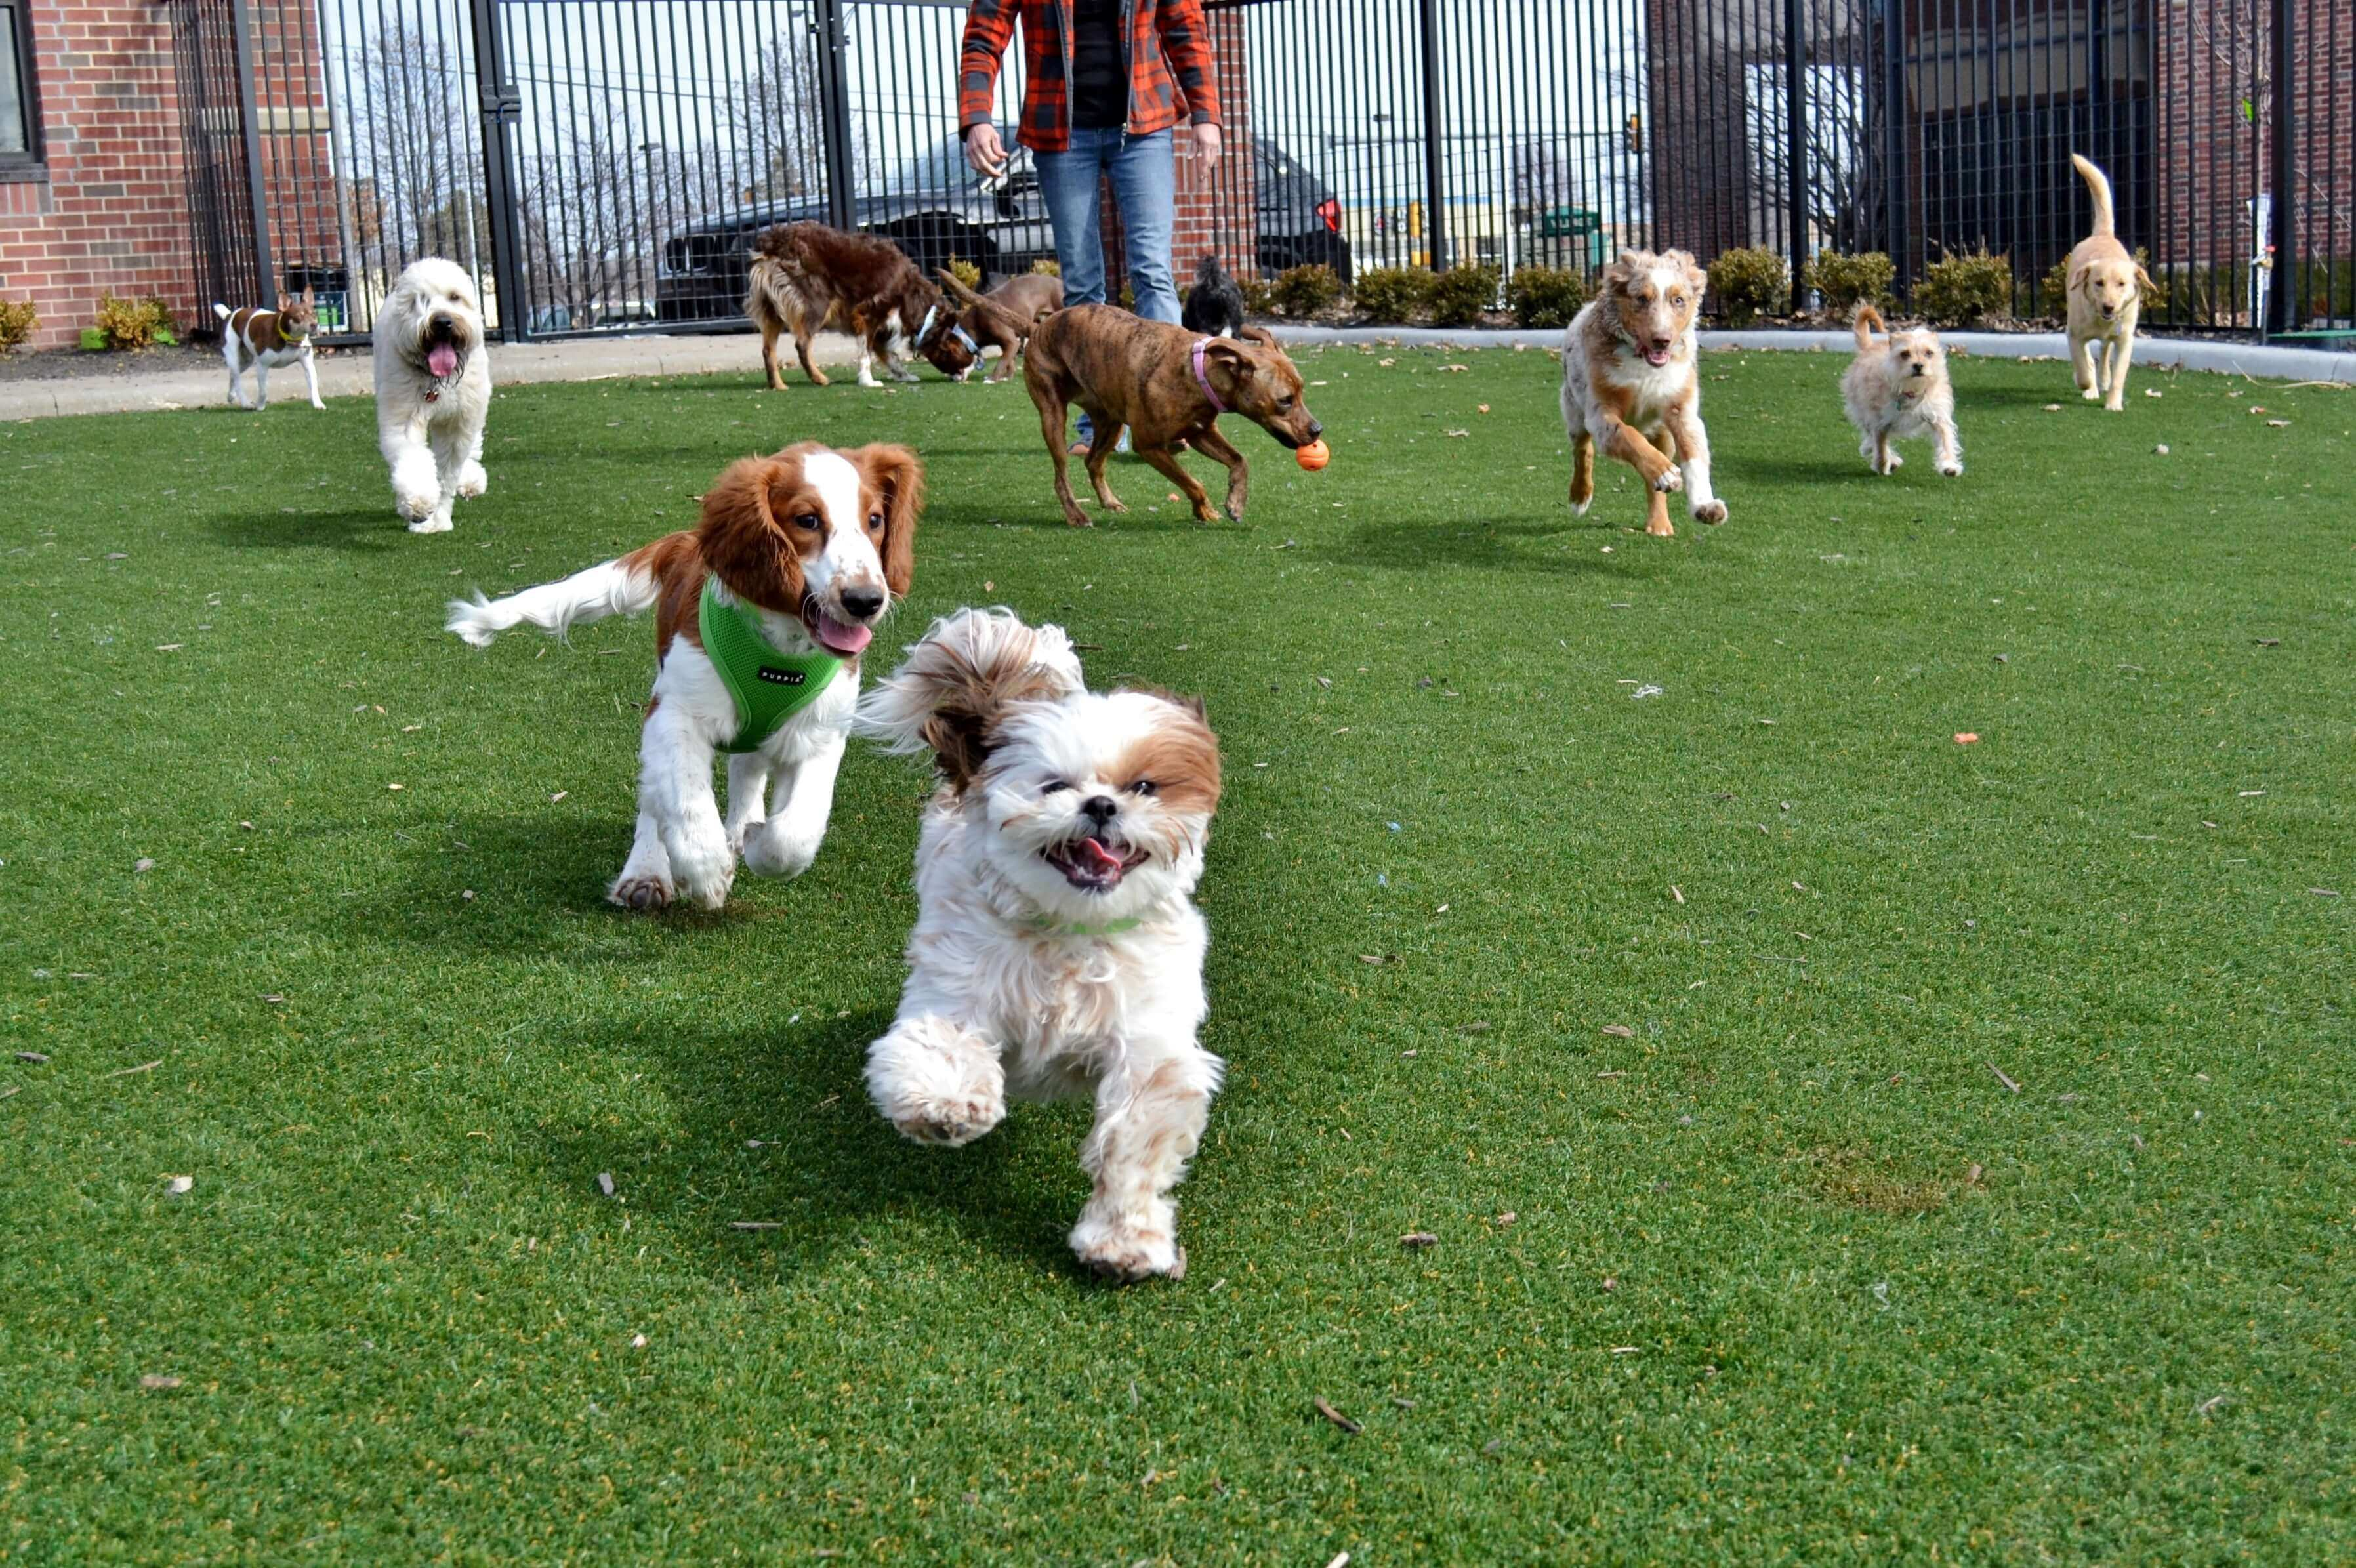 What You Need to Consider When Choosing a Dog Daycare?